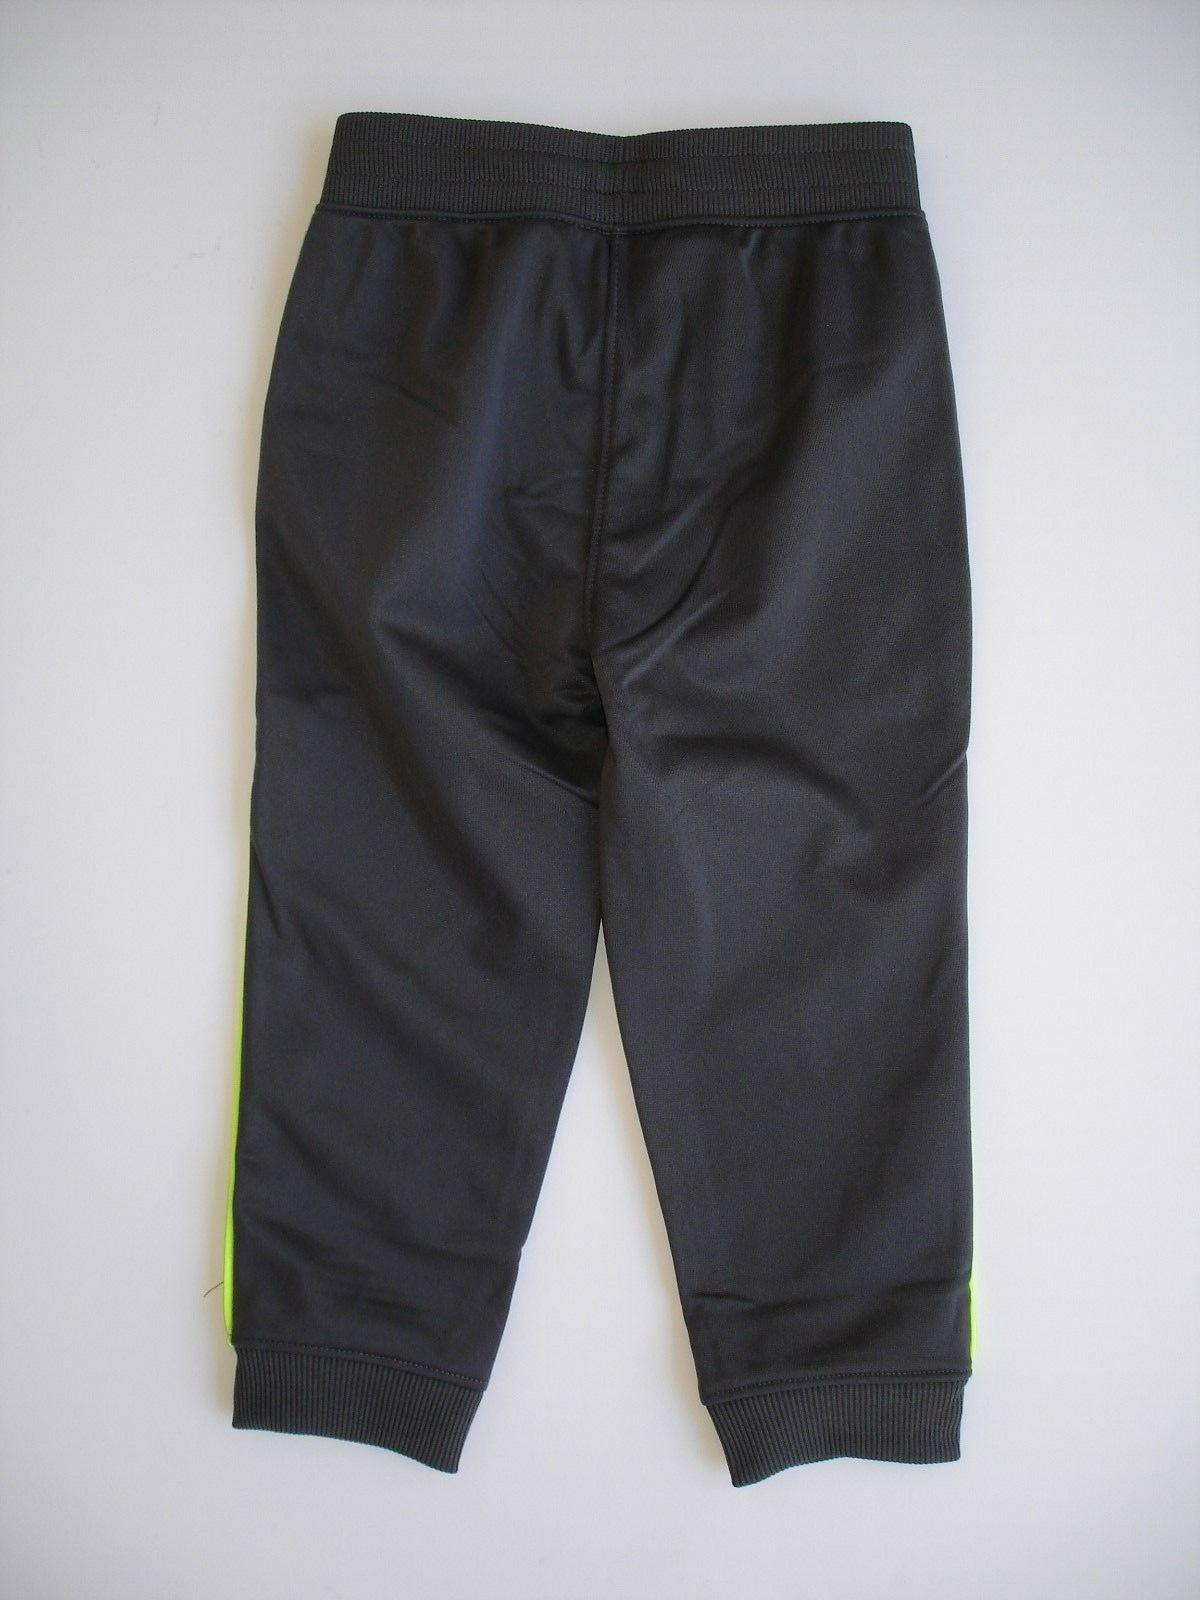 NWT Under Jogger in with - Zippered